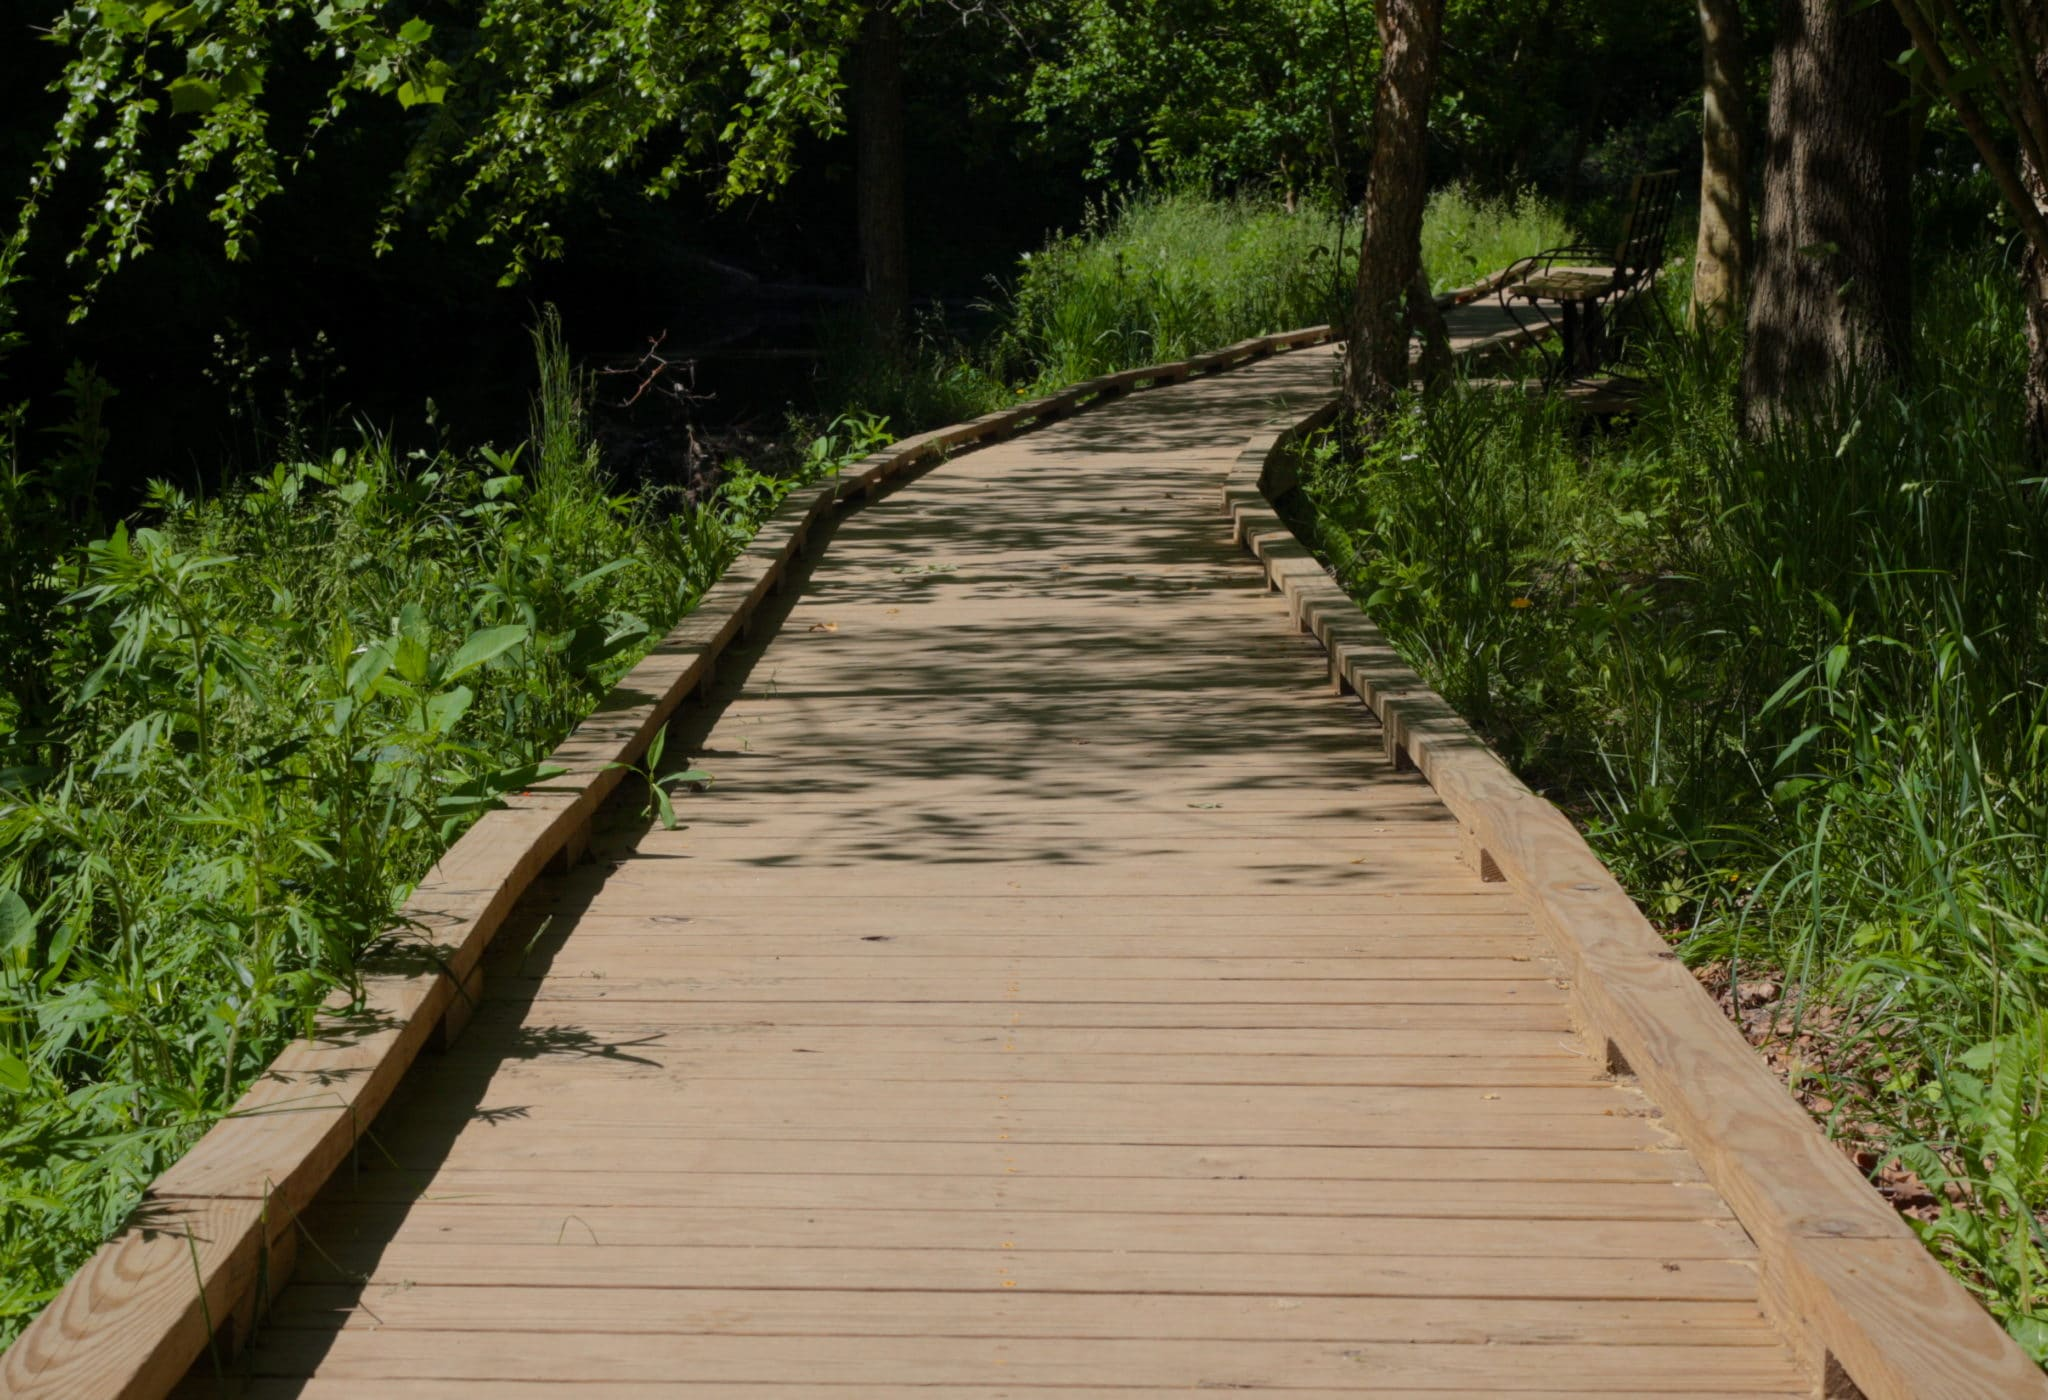 Wooden path with trees and grass